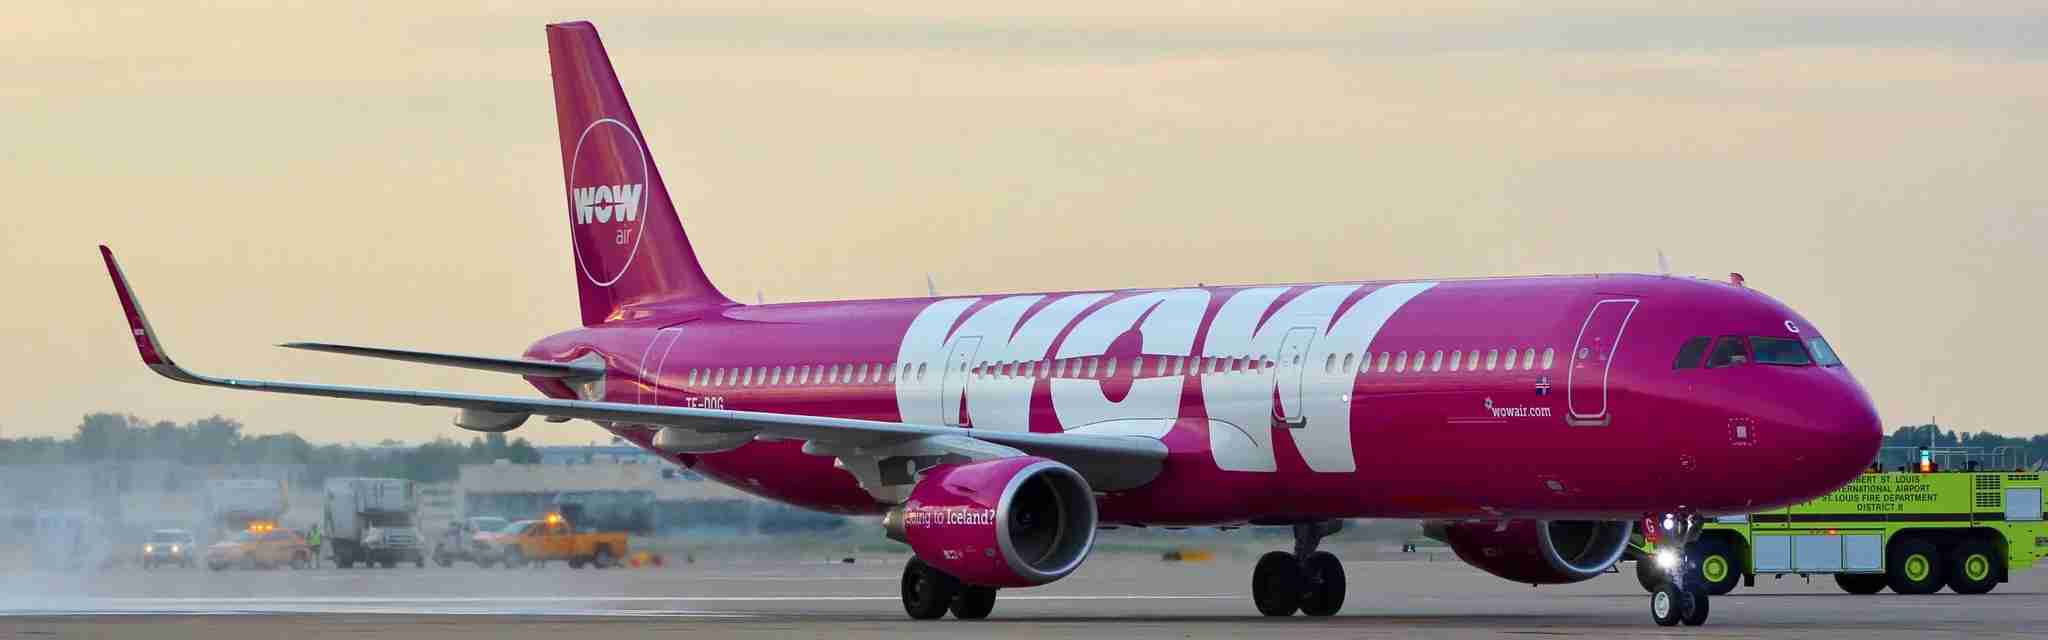 WOWair Airbus A320 at St. Louis-Lambert International Airport (STL) (Image by Max Prosperi/The Points Guy(